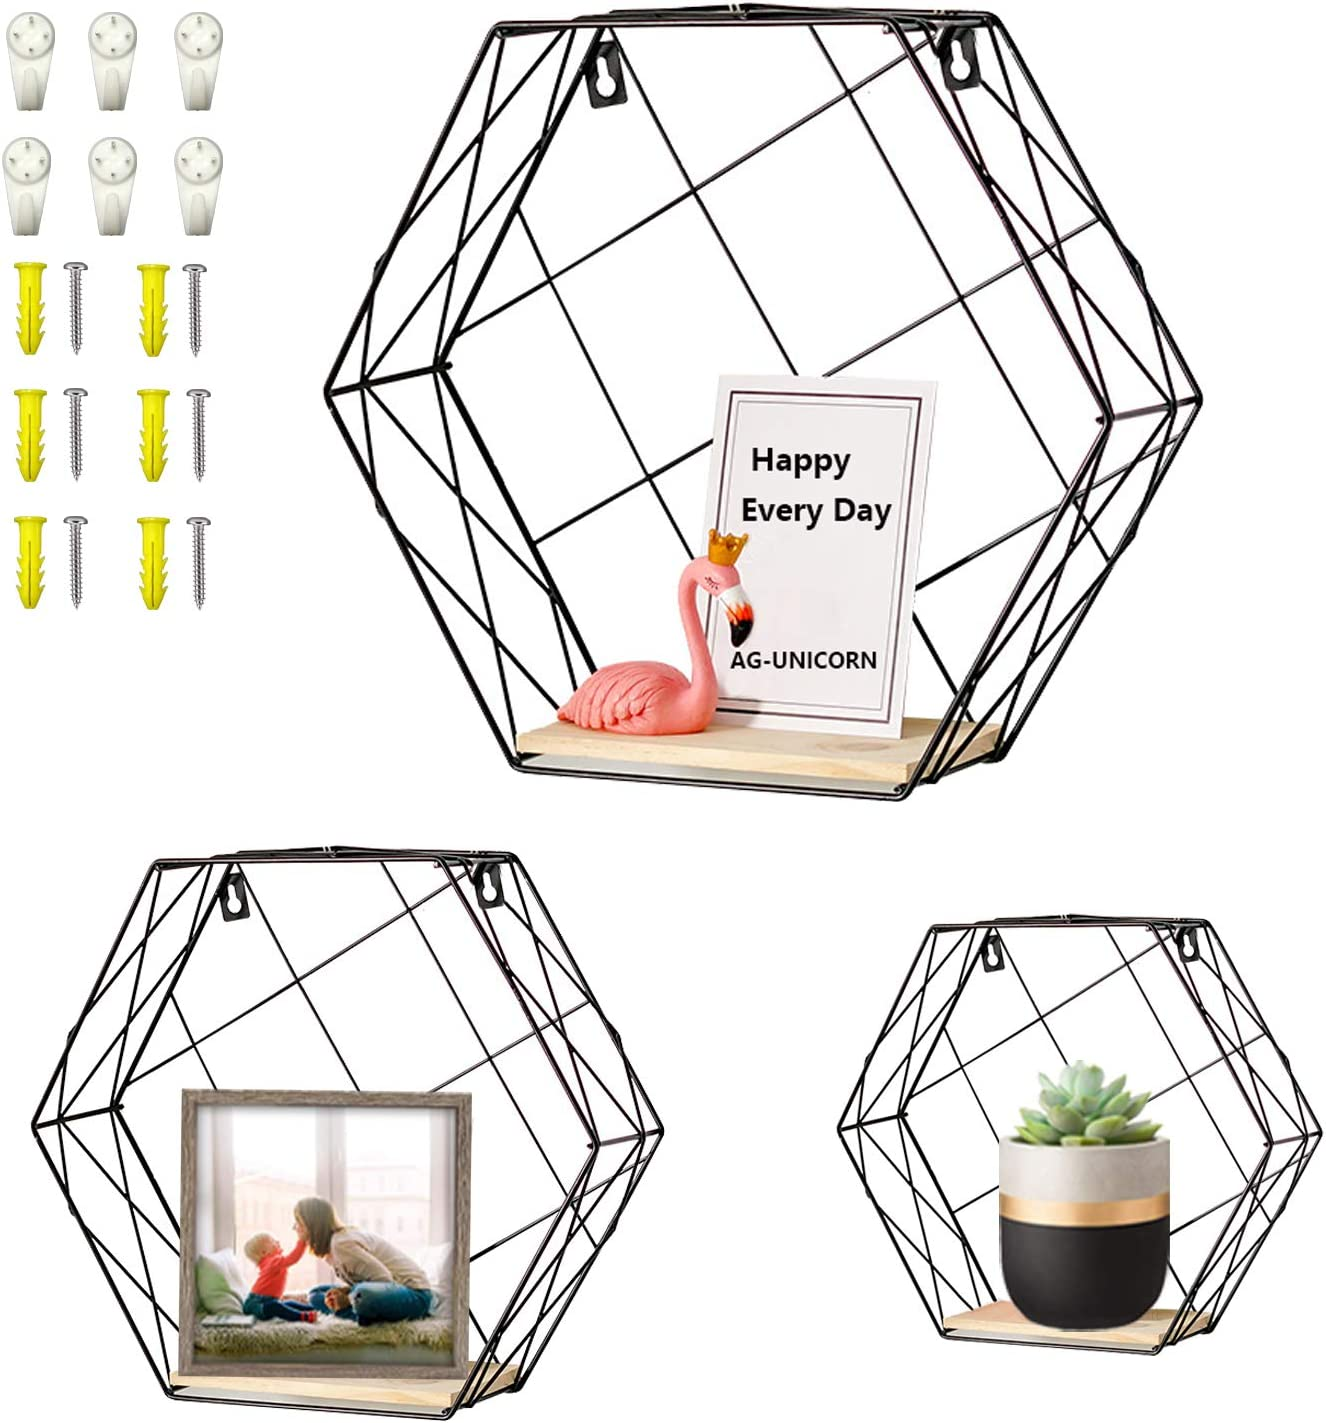 AG-UNICORN Set of 3 Metal Wall Mounted Hexagon Floating Shelves Storage Display Shelf- Modern Home Art Decor for Living Room Bedroom Bathroom Kitchen Office and Study- with Screws Anchors